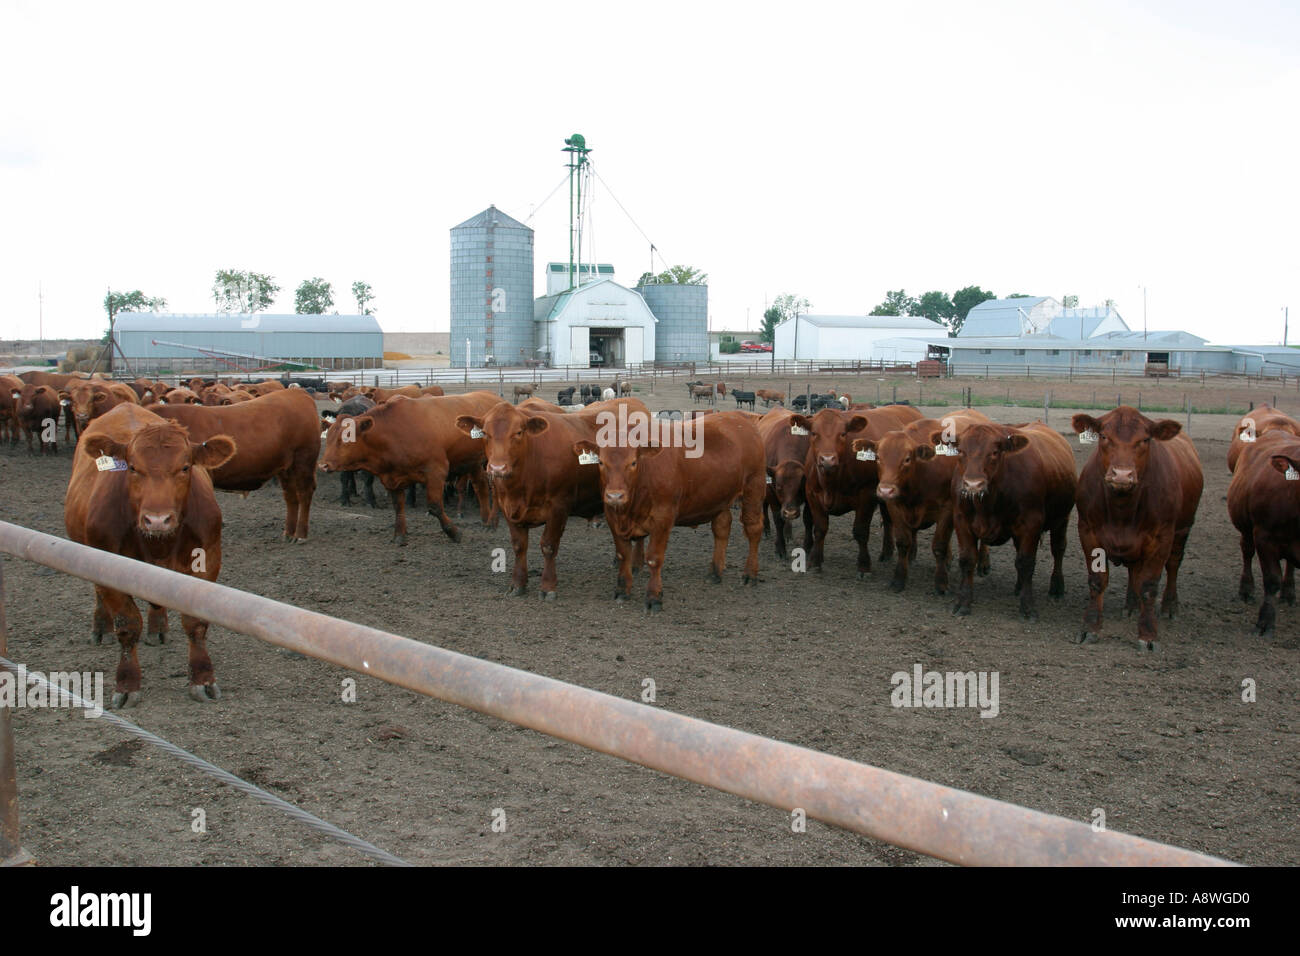 Feedlot where cows are fattened and raised for slaughter